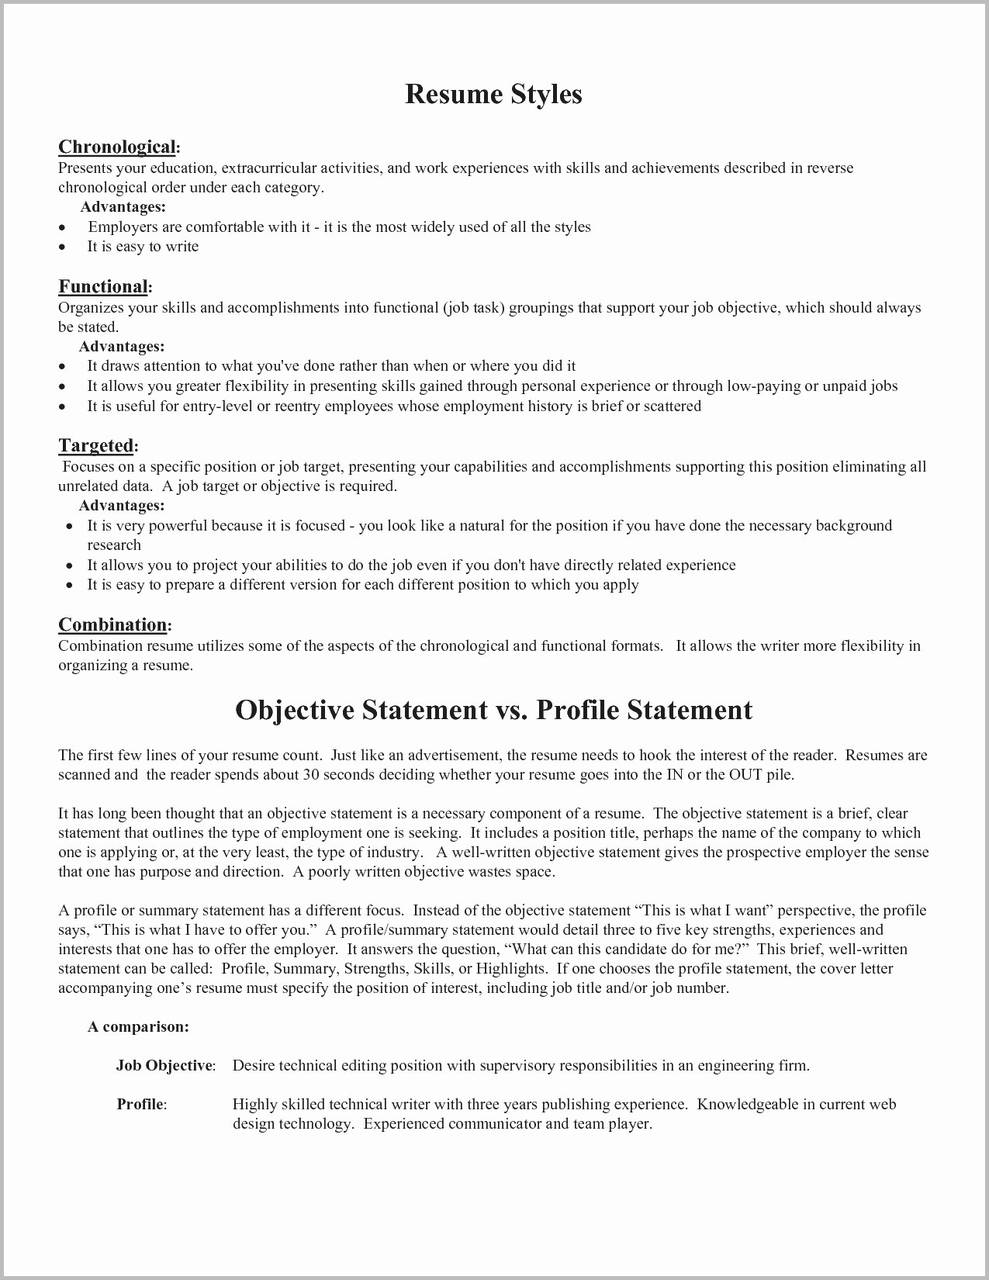 Extracurricular Activities Resume - Resume Templates In Minutes Part 4